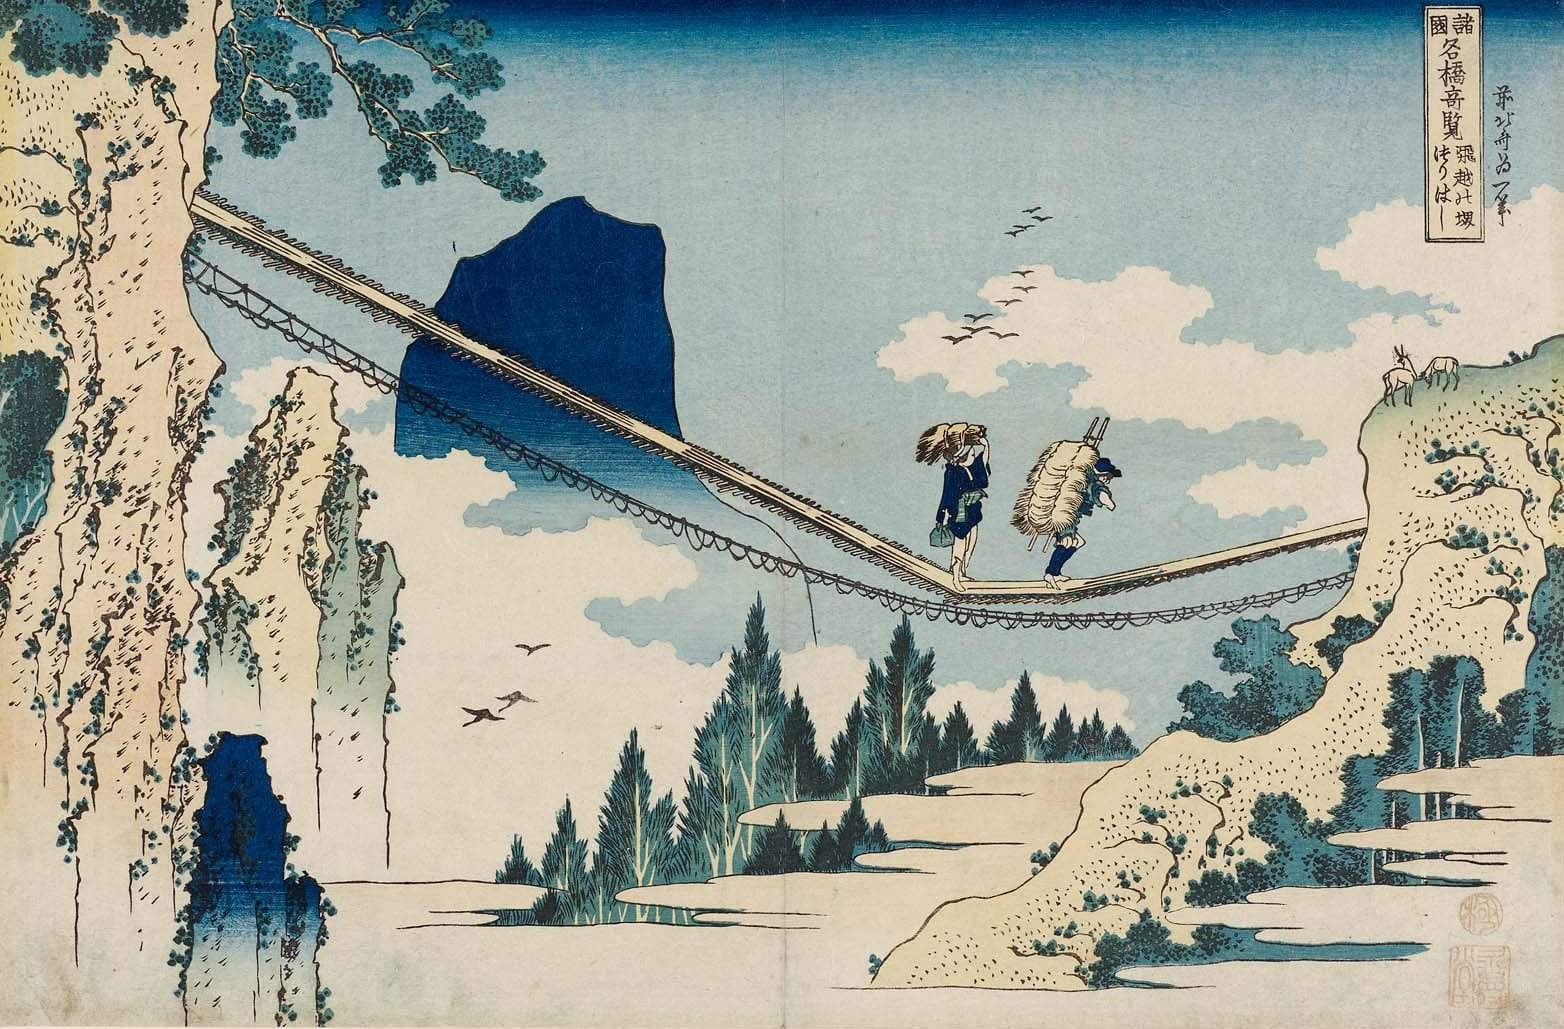 Hokusai Art Prints: Go Beyond the Great Wave